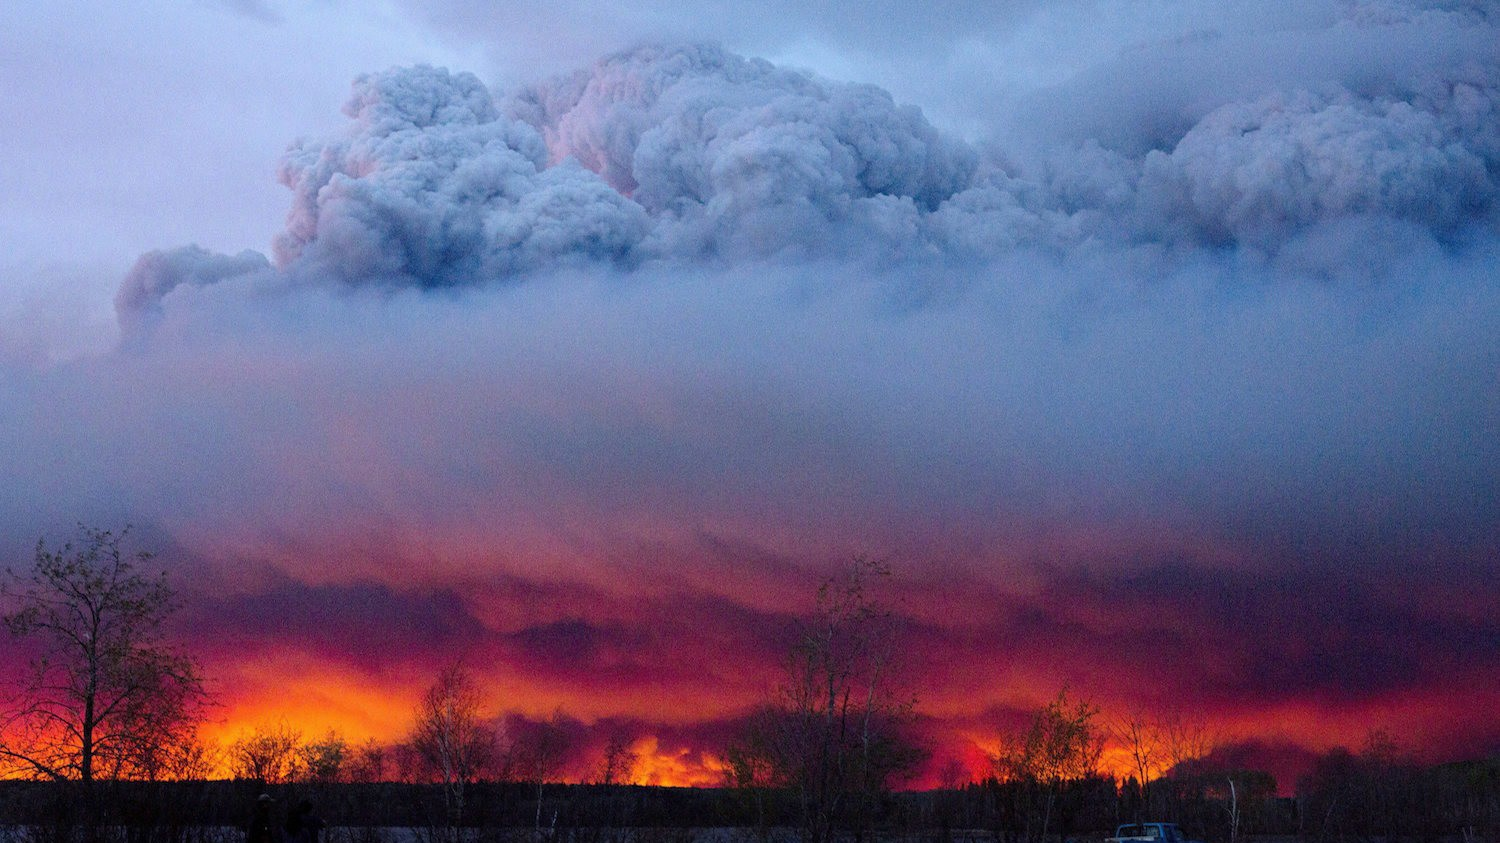 Muslims in Alberta Pray for Rain as Raging Wildfire Forces More People to Flee